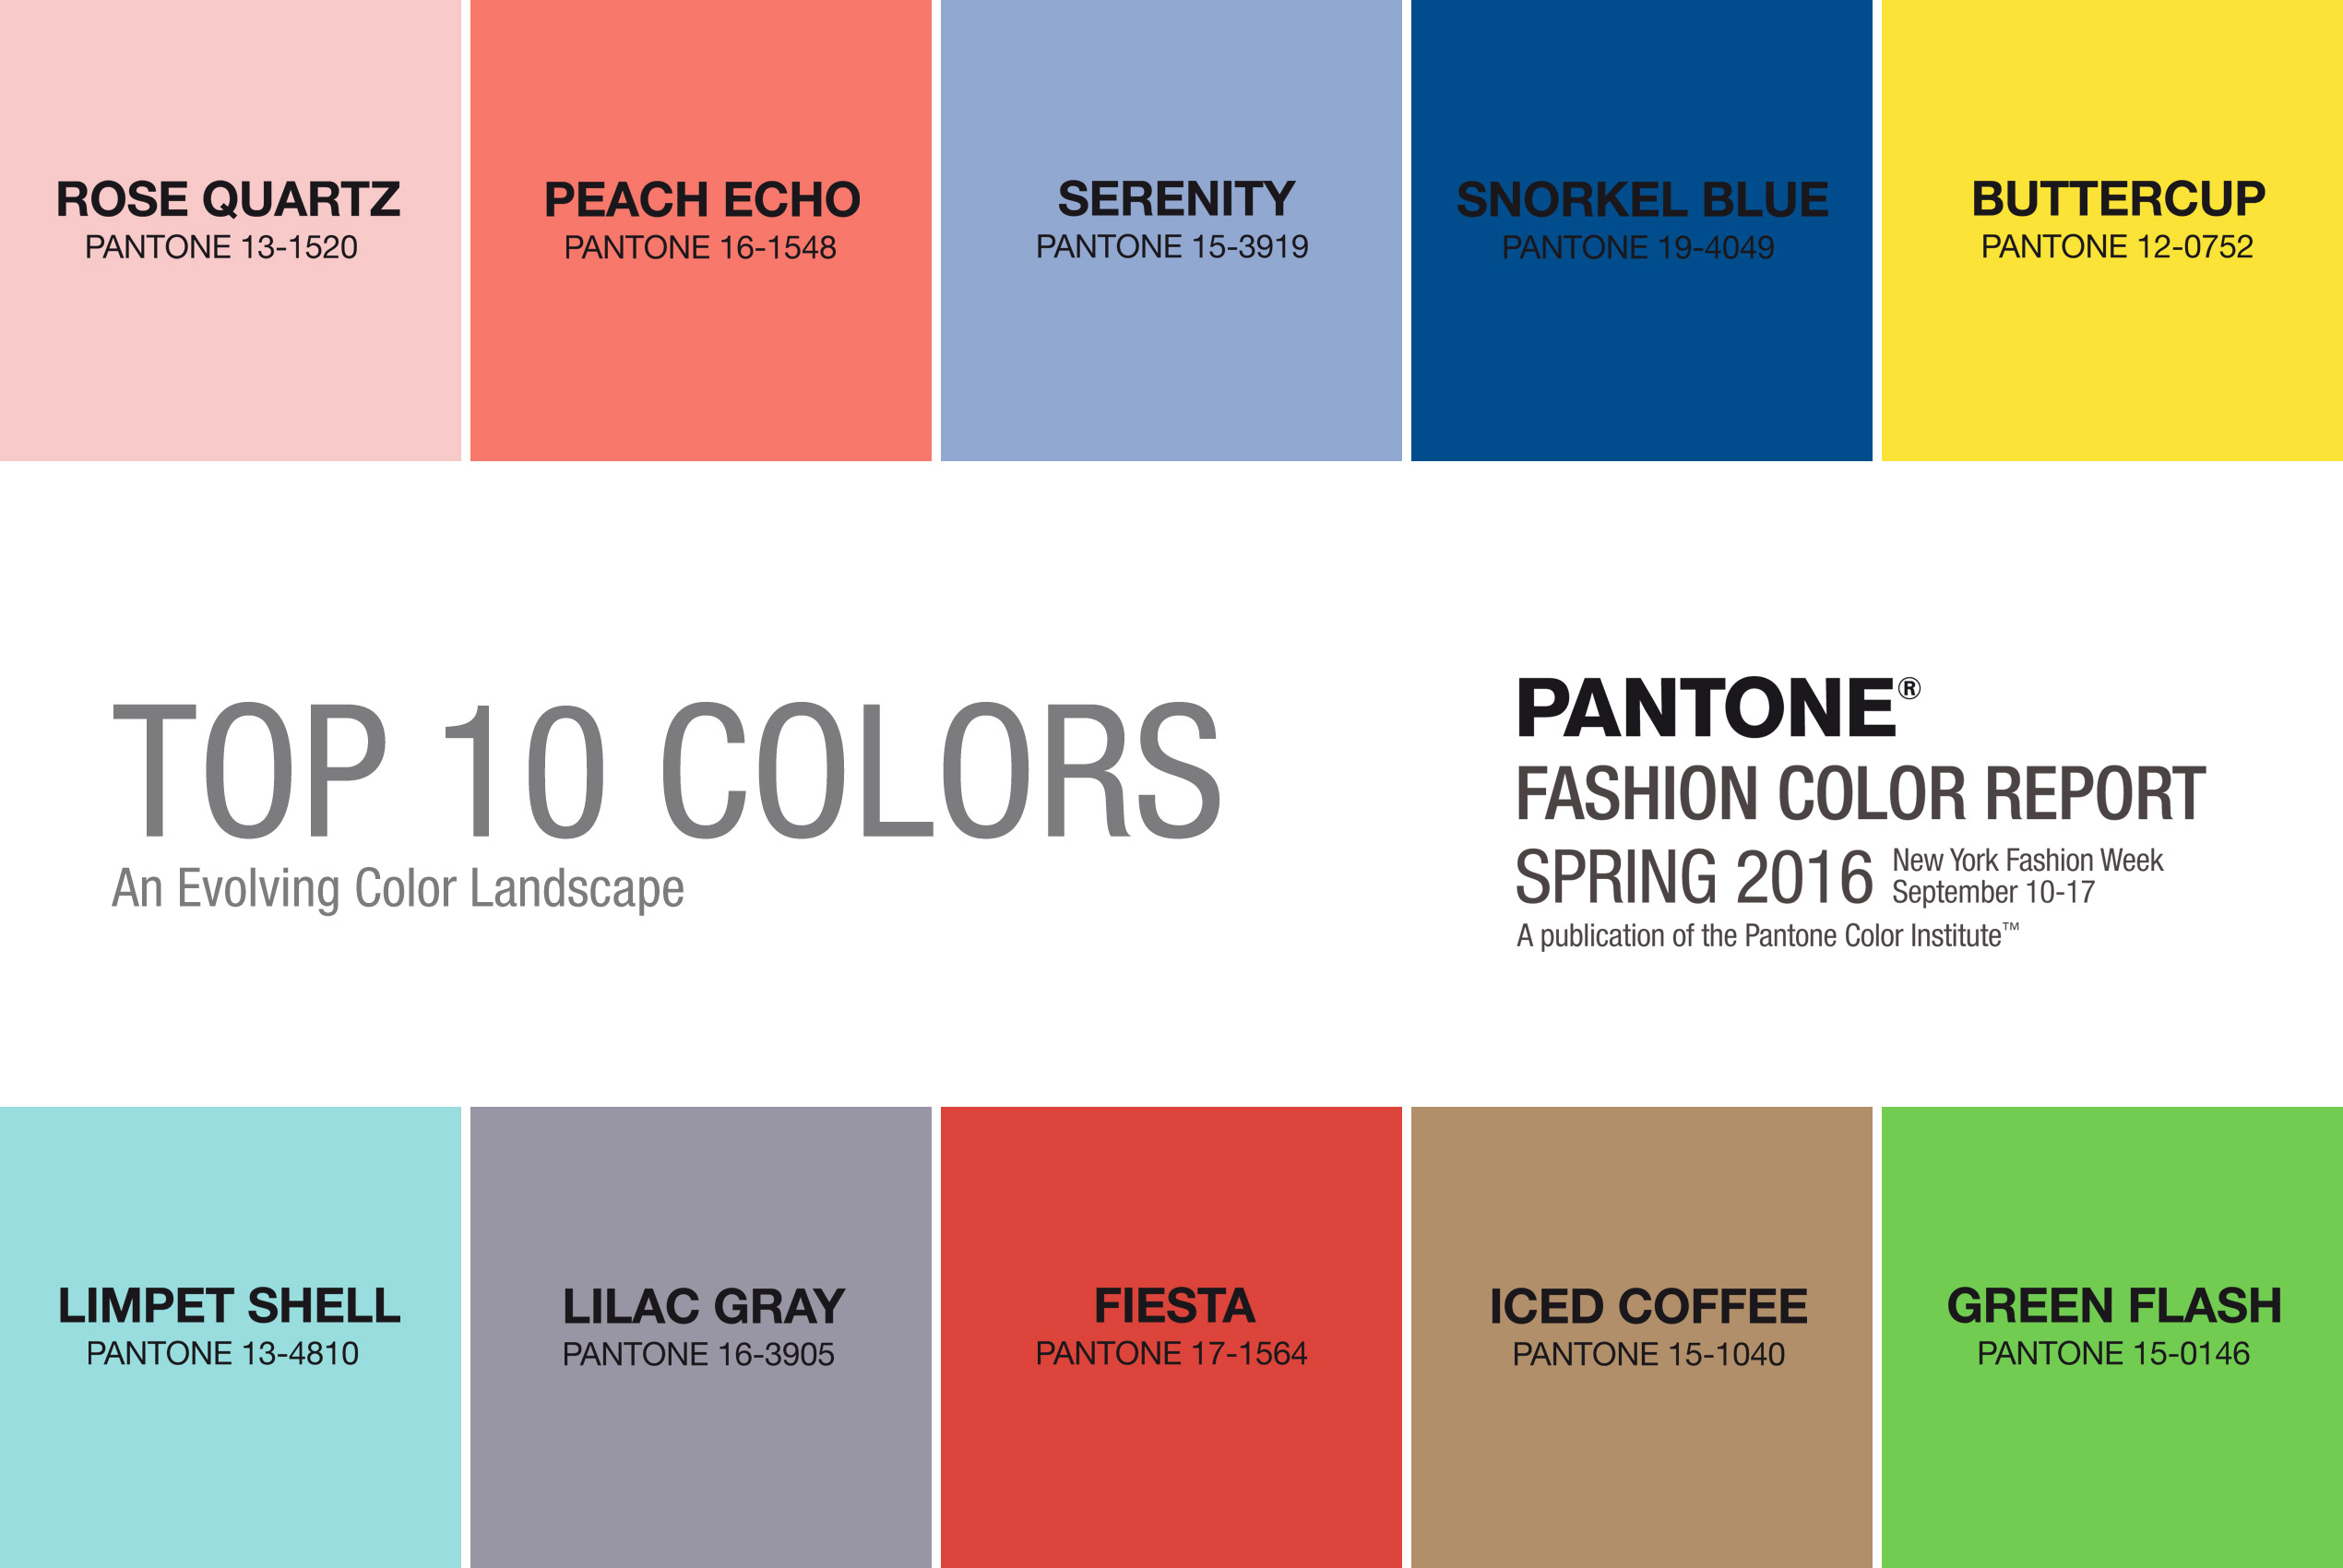 Top 10 trendy colours for spring and summer 2016 according to Pantone.